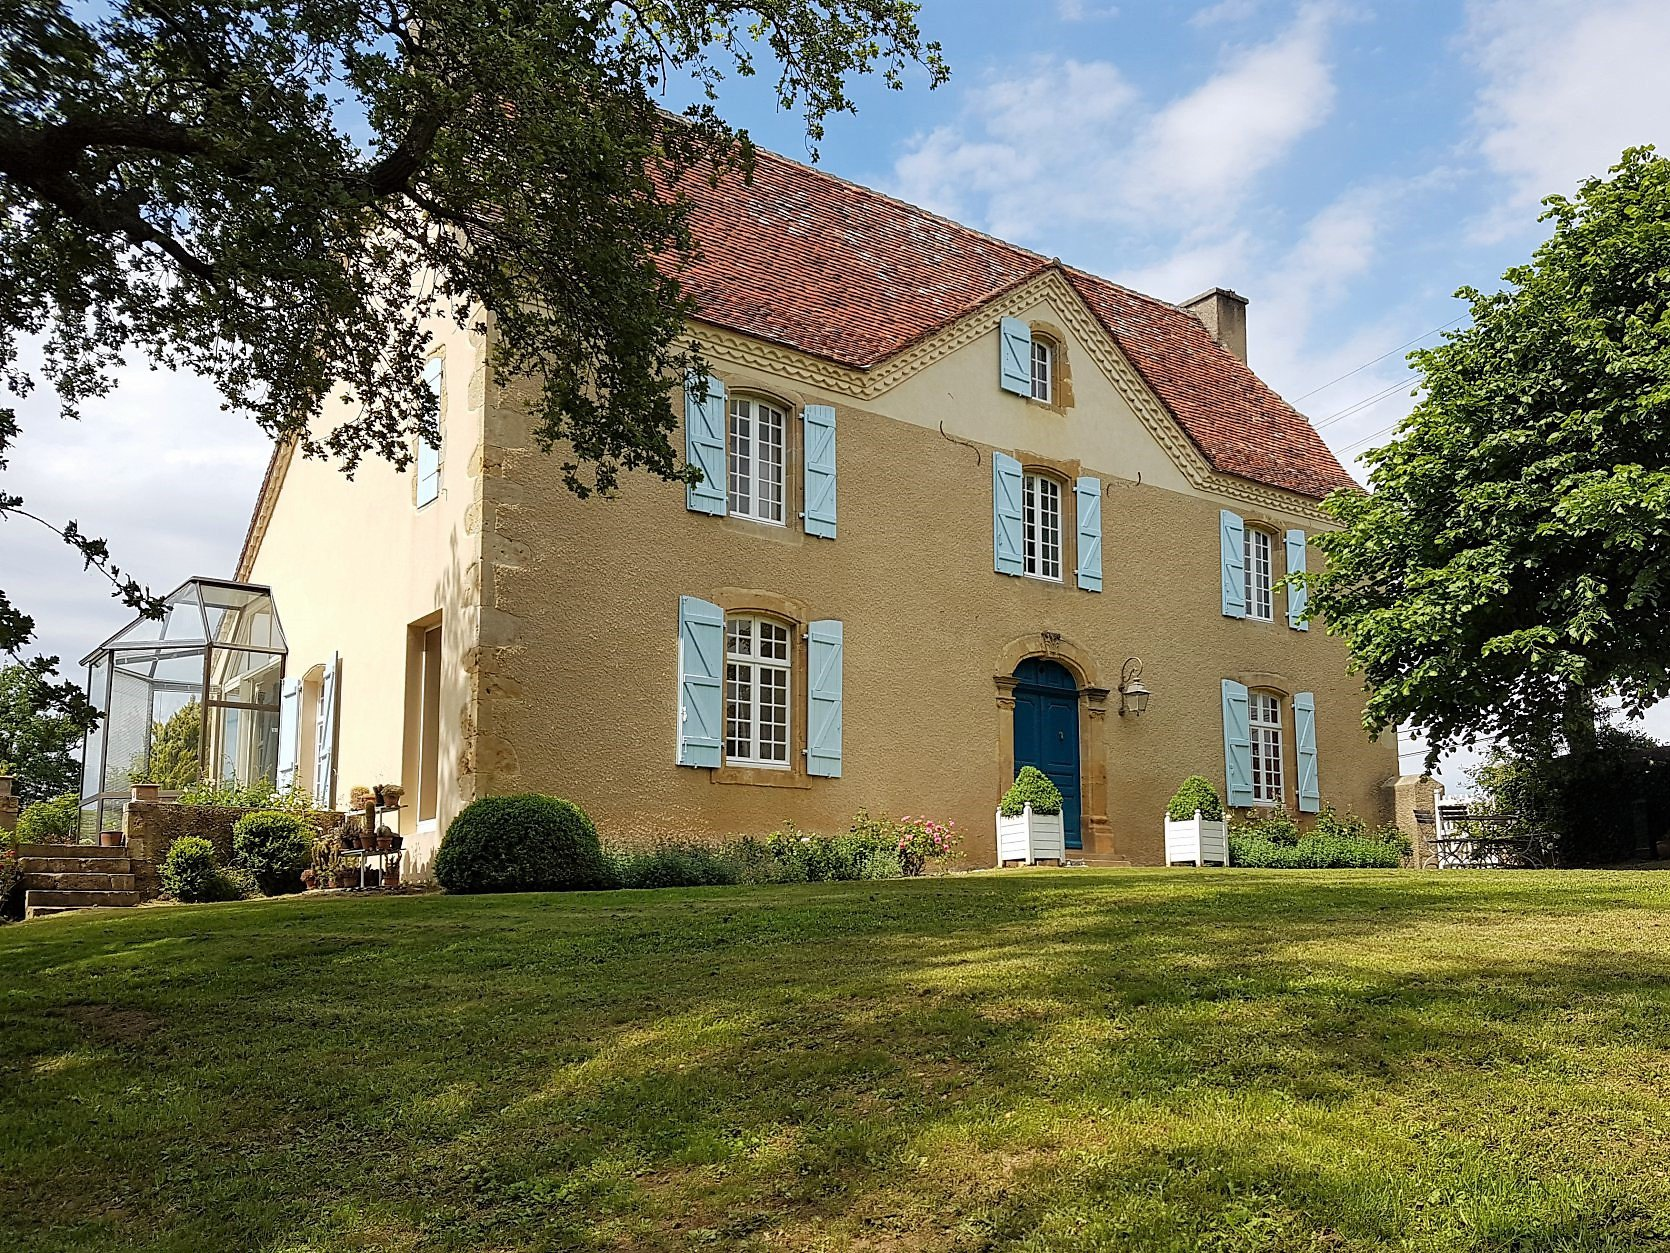 Near LEMBEYE - Lovingly restored early 19th century Maison de Maître with nearly 3 hectares of land.